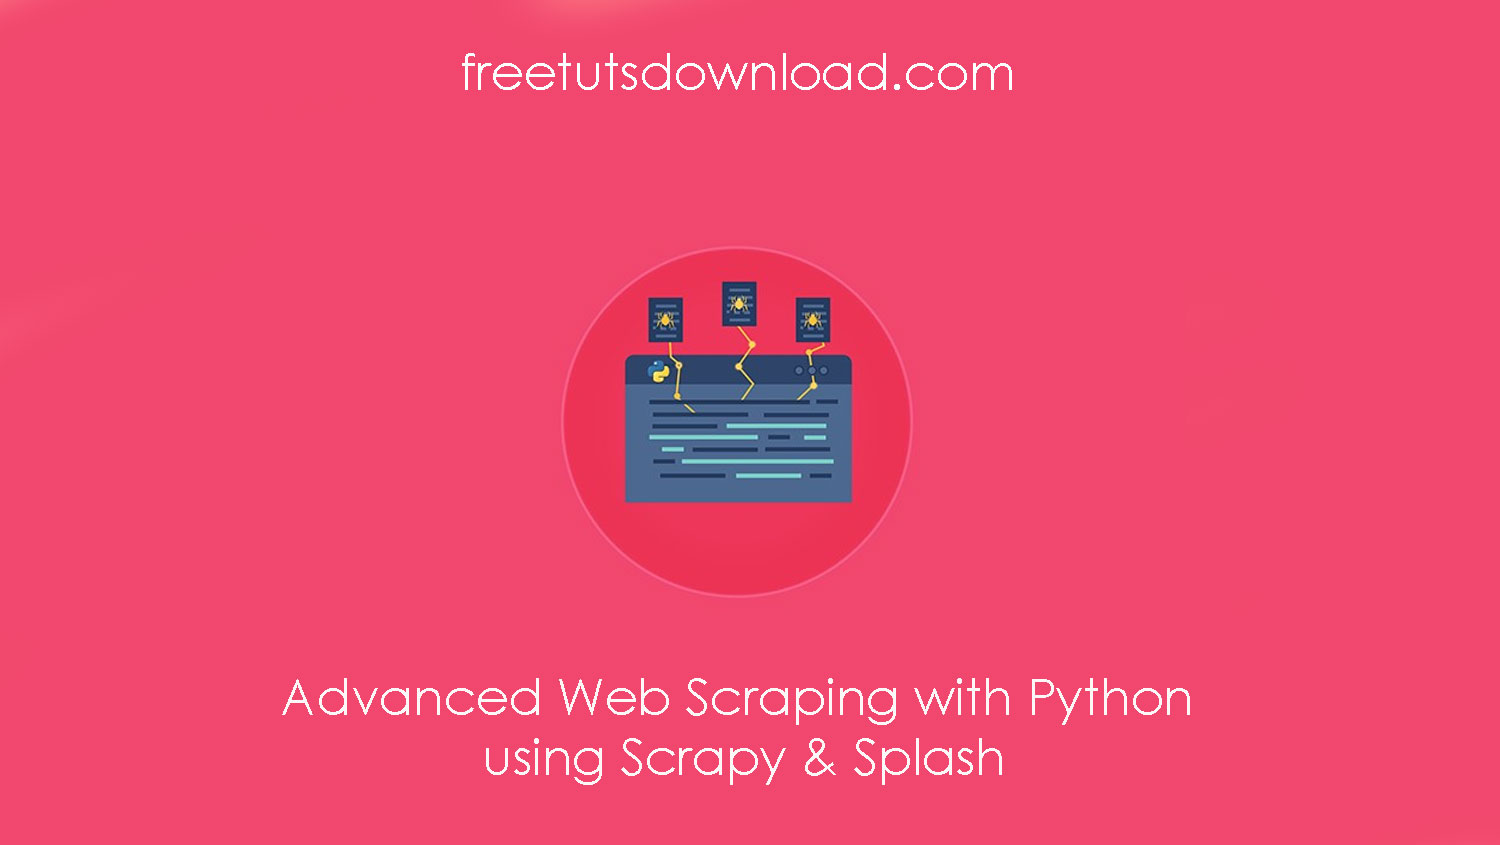 Advanced Web Scraping with Python using Scrapy & Splash free download